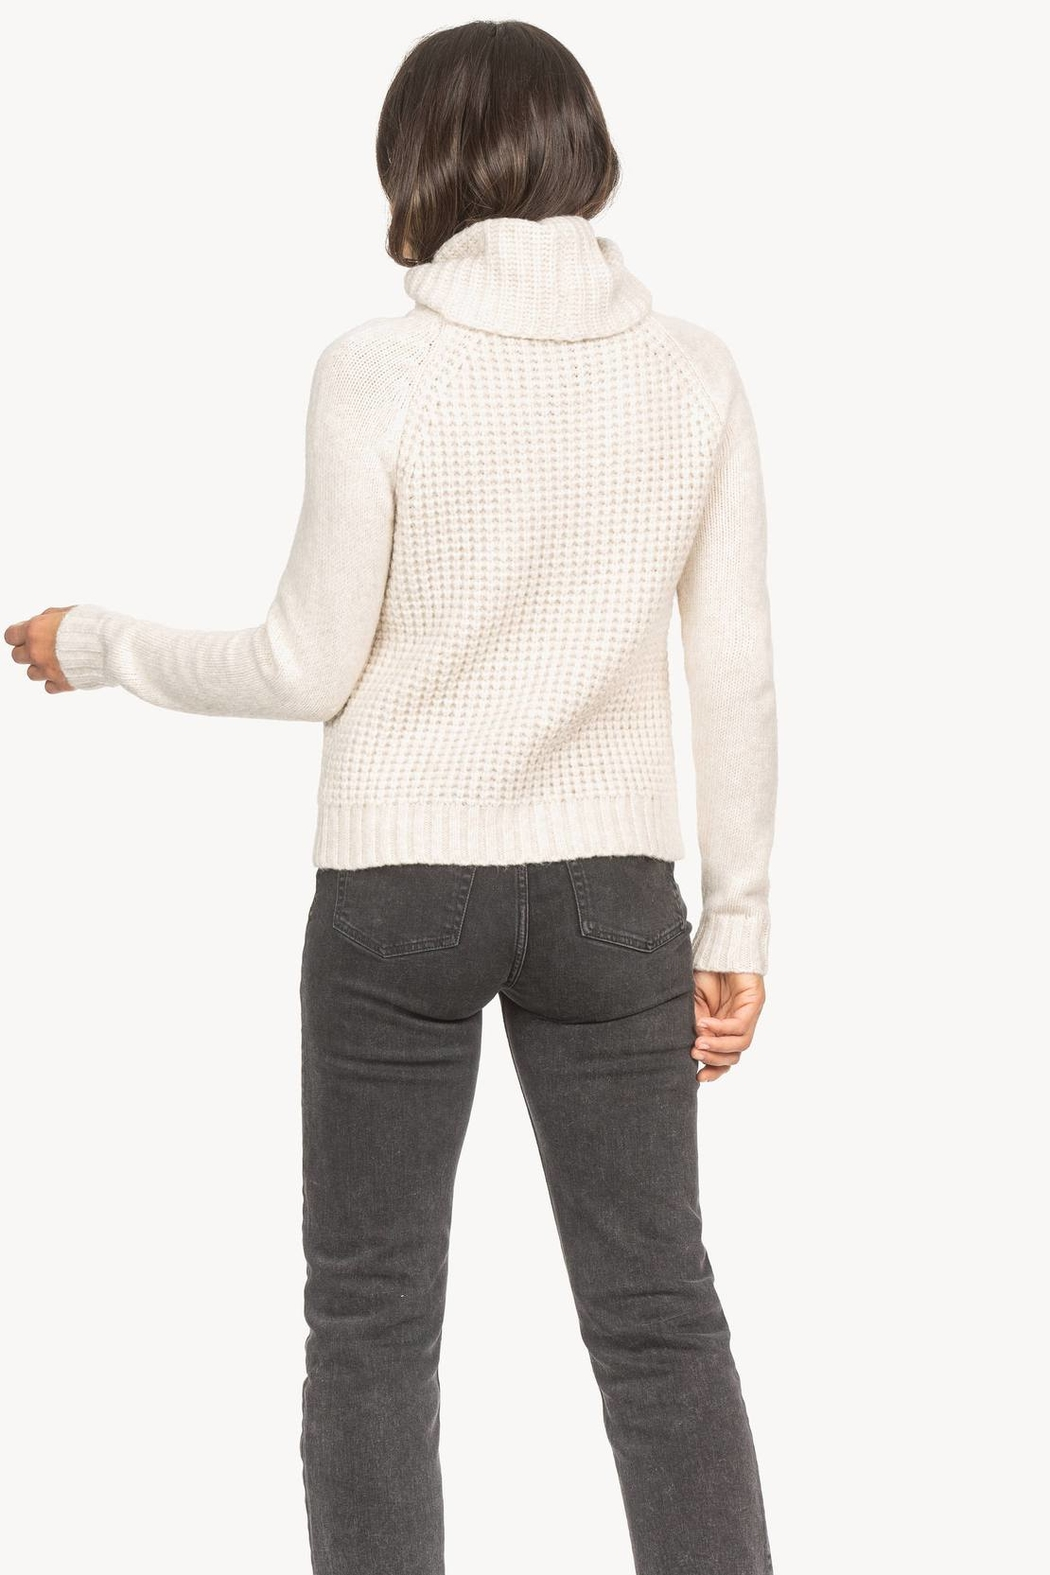 Lilla P Cropped Turtleneck Sweater - Front Full Image